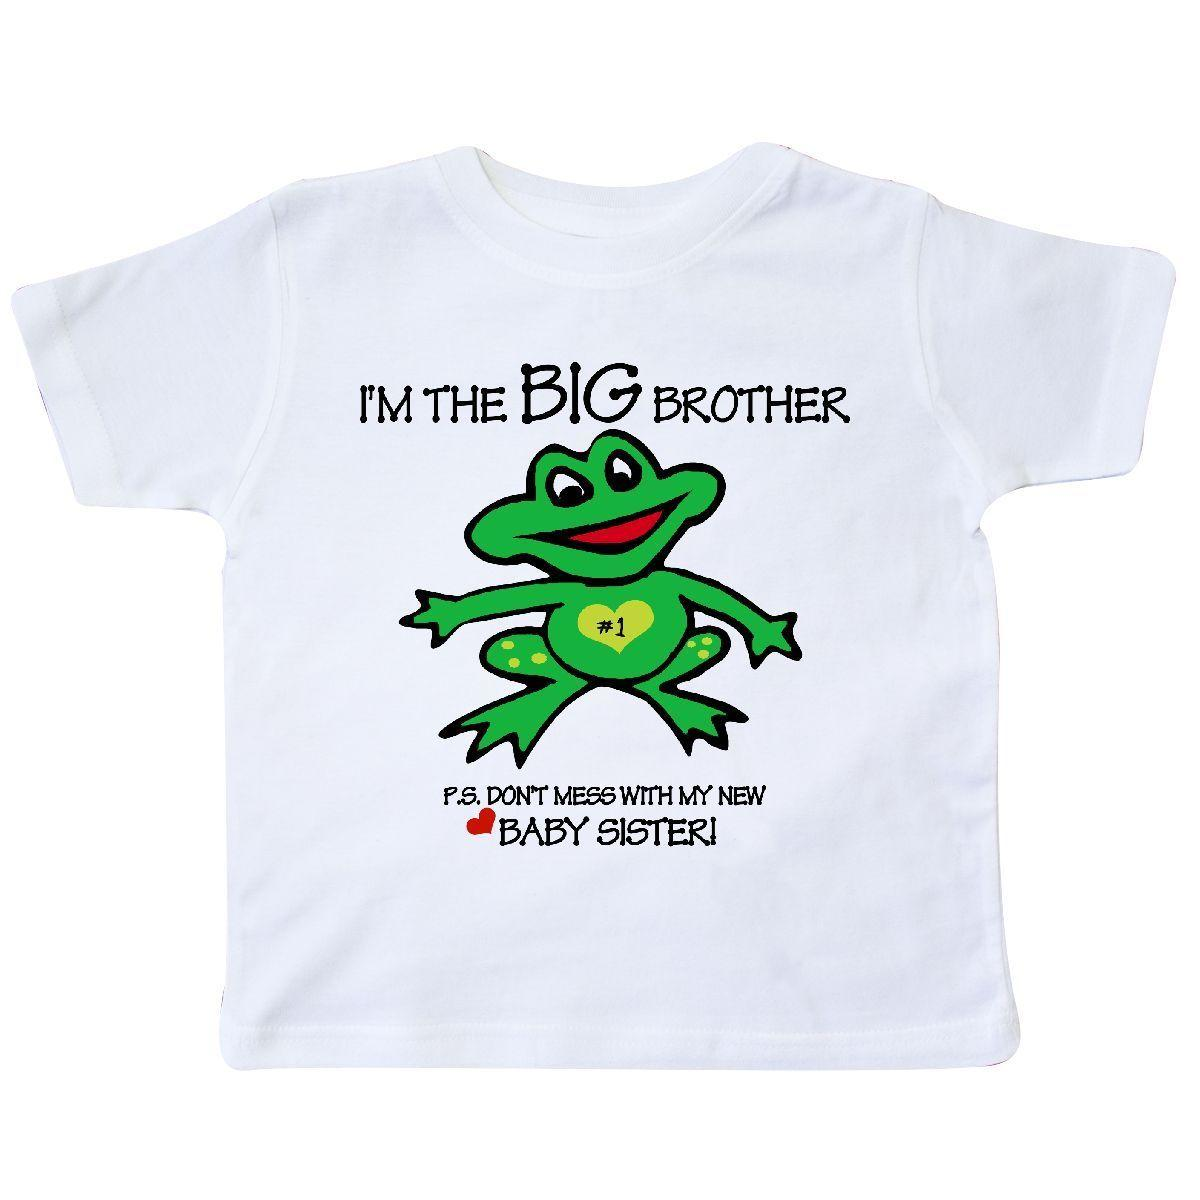 fce295cb3869f Inktastic Frog Big Brother Of Baby Sister Toddler T-Shirt Happy Green  Little One Funny free shipping Unisex Casual tee gift